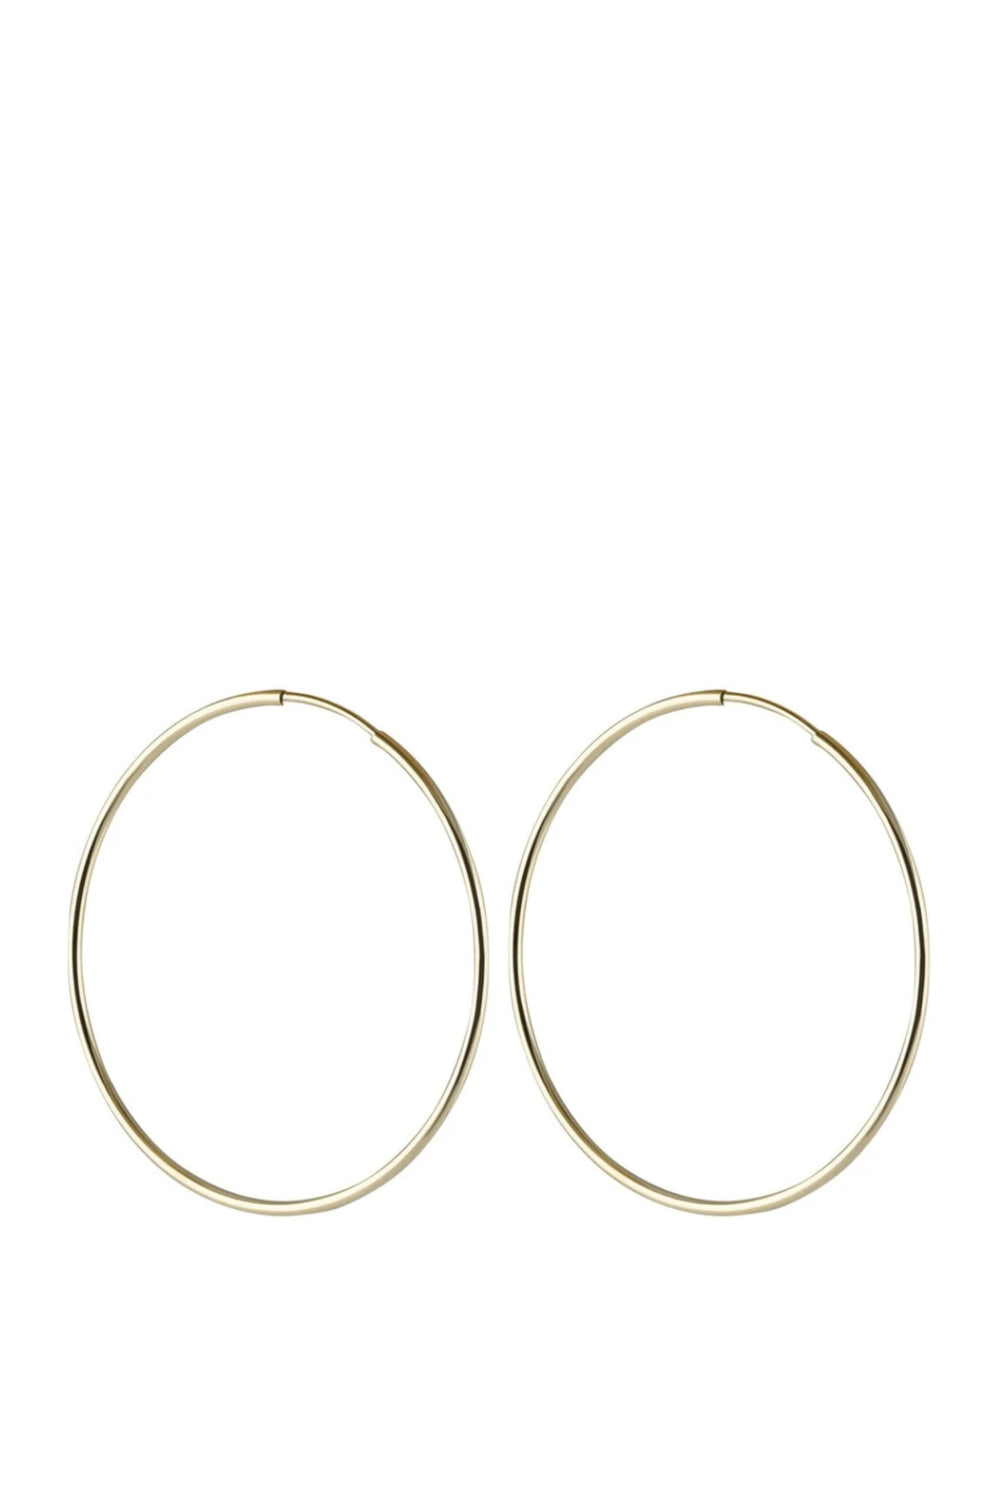 CBYC HOOPS Gold filled    Small